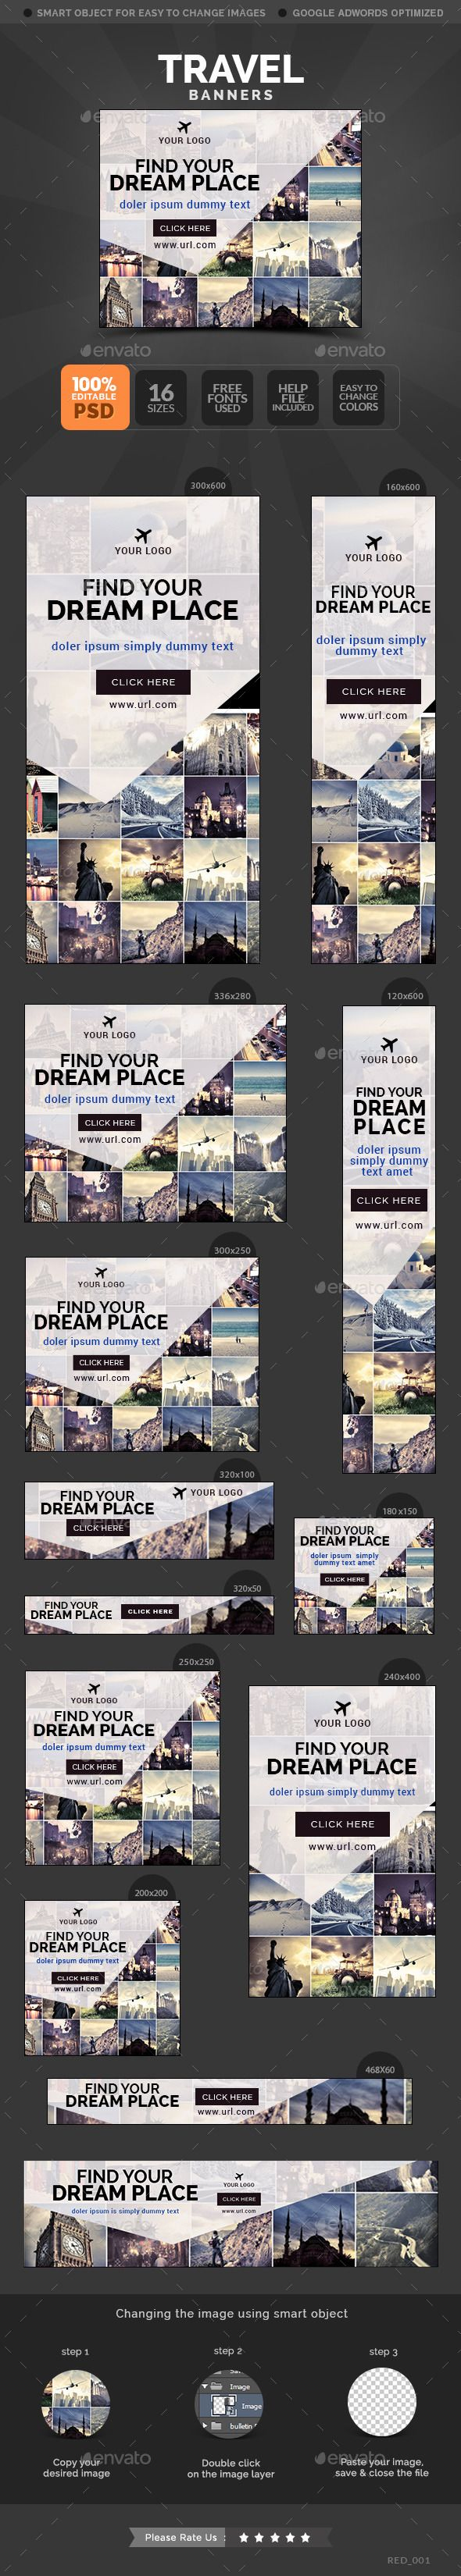 Win a Trip-->Contest Display Ad Campaign  Travel banners Template PSD #banner #webbanner #design Download: http://graphicriver.net/item/travel-banners/10650142?ref=ksioks